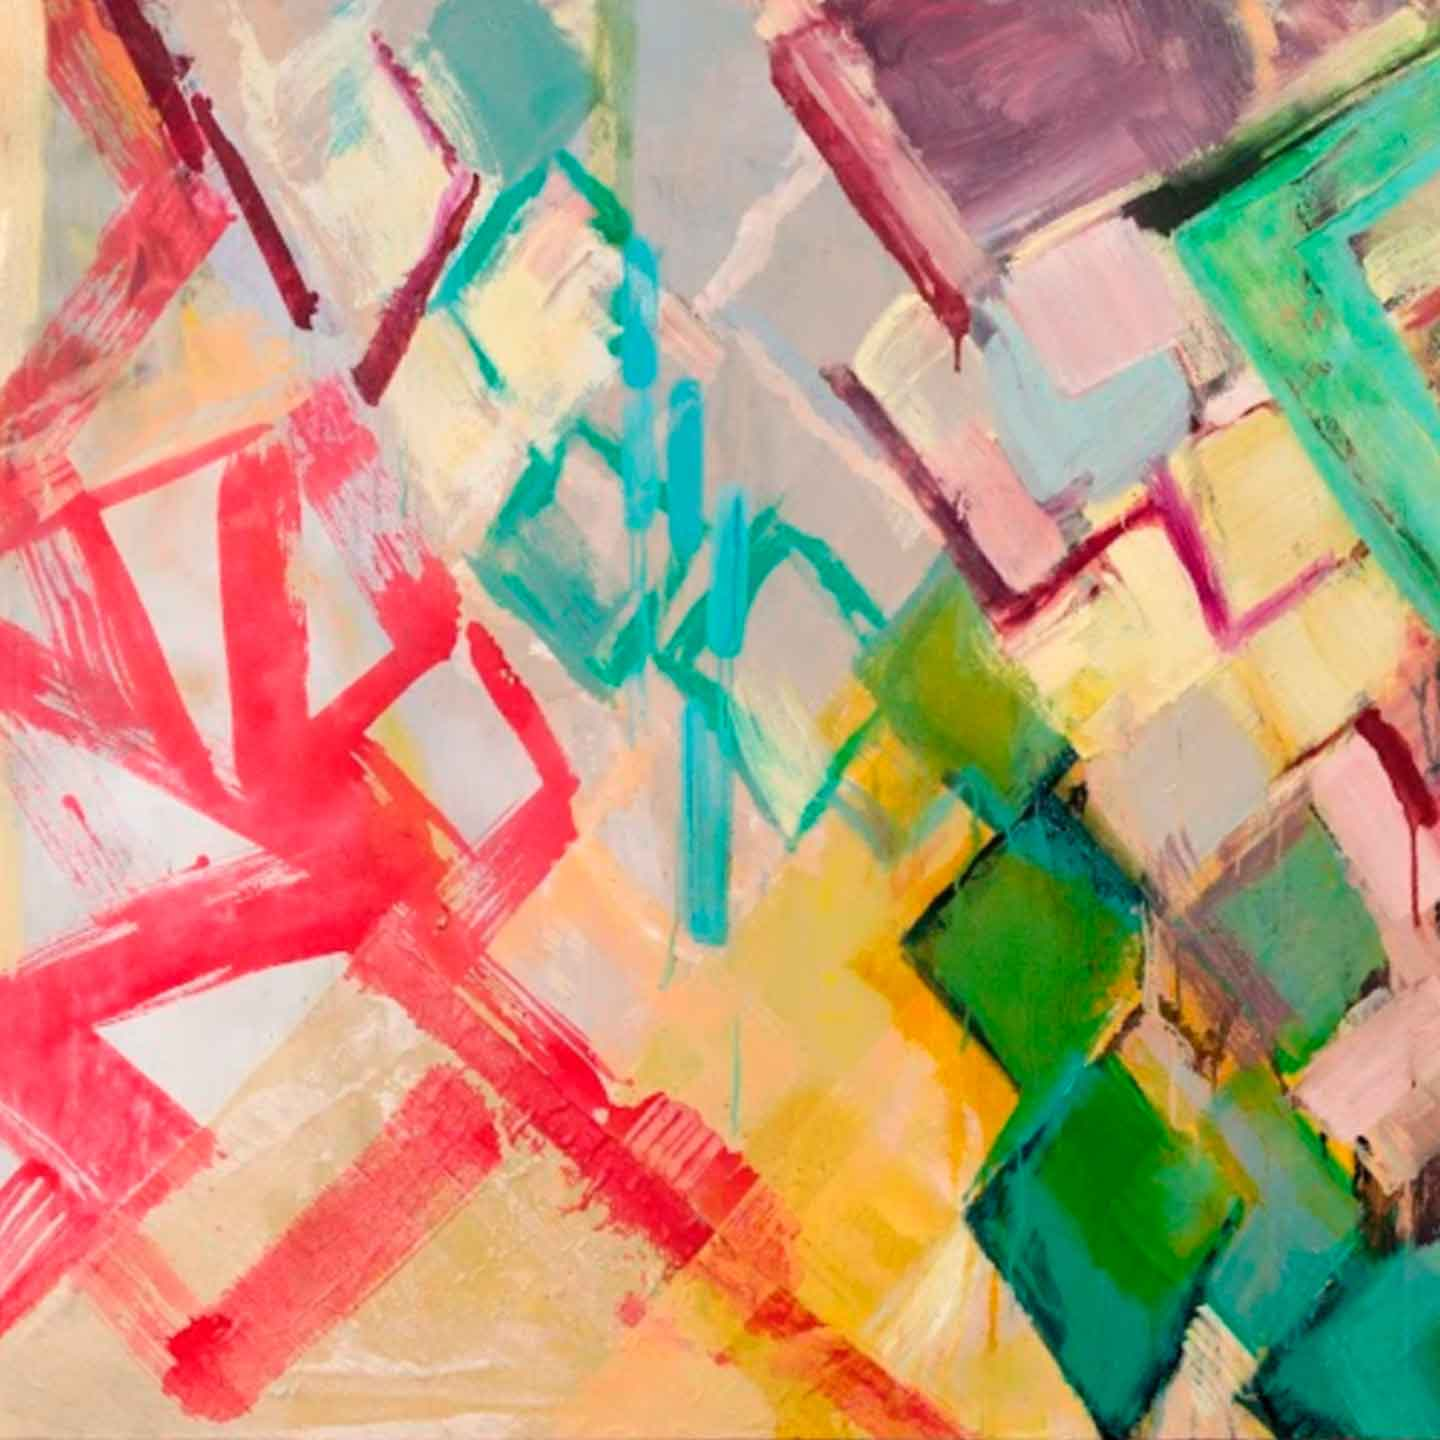 contemporary art, colorful art, contemporary, nature art work, tree art, moody painting, natural art, art, colorful art, geometric rainbow art, modern art, colorful abstract art, rent art, modern oil painting, warm color tones, bright pantone, fun art for office, colorful contemporary painting, yellow red blue painting, vibrant contrasting art, vibrant color palette, abstract colorful, art work for home, painting for apartment, hand painted artwork, unique home painting, geometric rainbow art, modern art, colorful abstract art, rent art, modern oil painting, warm color tones, bright pantone, fun art for office, colorful contemporary painting, yellow red blue painting, vibrant contrasting art, vibrant color palette, abstract colorful, art work for home, painting for apartment, hand painted artwork, unique home painting, black and white art, black white yellow art, oil canvas painting, modern art inspiration, sculpture for home, colorful wall art, woman artwork, semi realistic painting